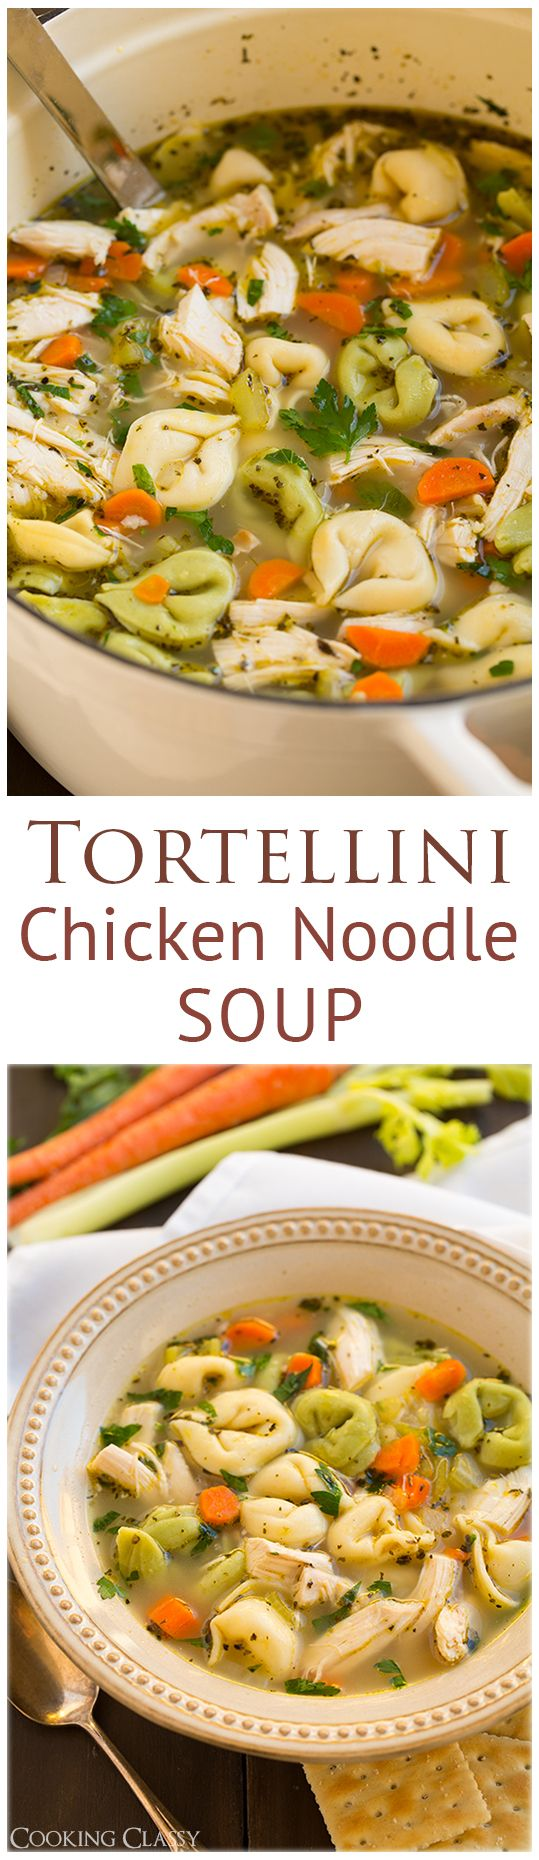 buy chrome hearts sunglasses Tortellini Chicken Noodle Soup  this is so easy to make and seriously delicious A simple  minute meal that you will LOVE